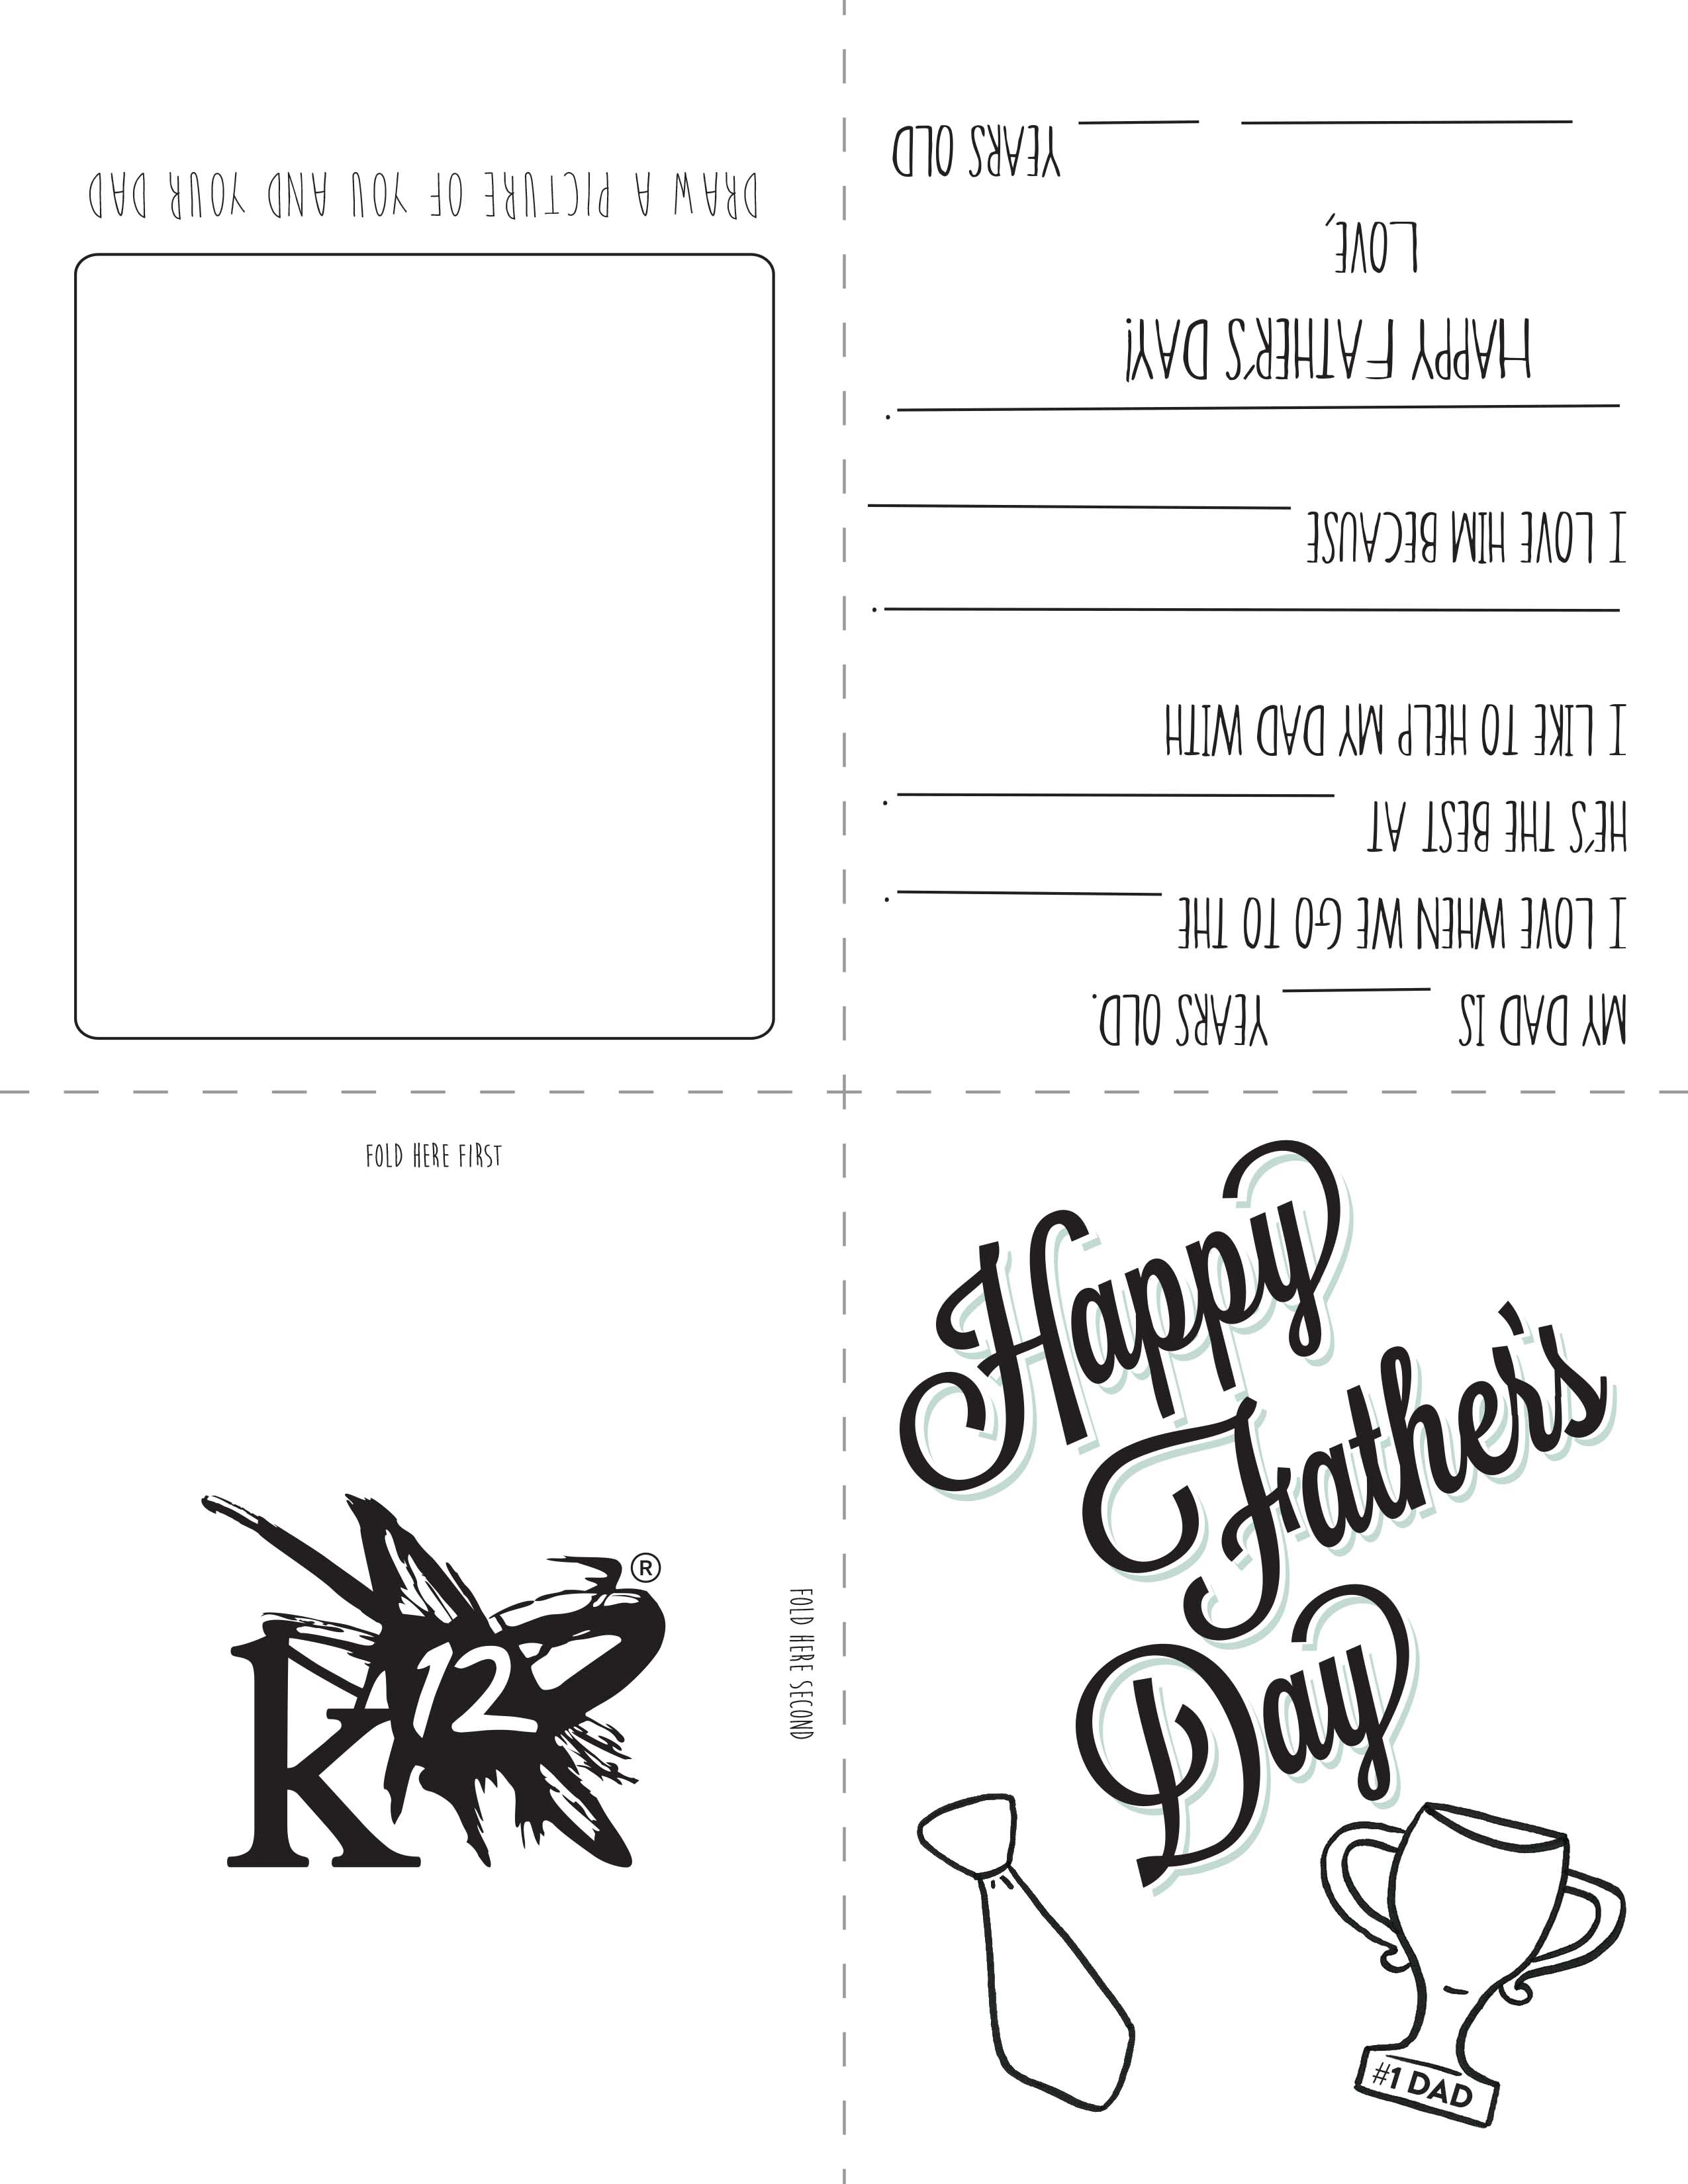 55 Visiting Father S Day Card Template For Toddlers Now by Father S Day Card Template For Toddlers